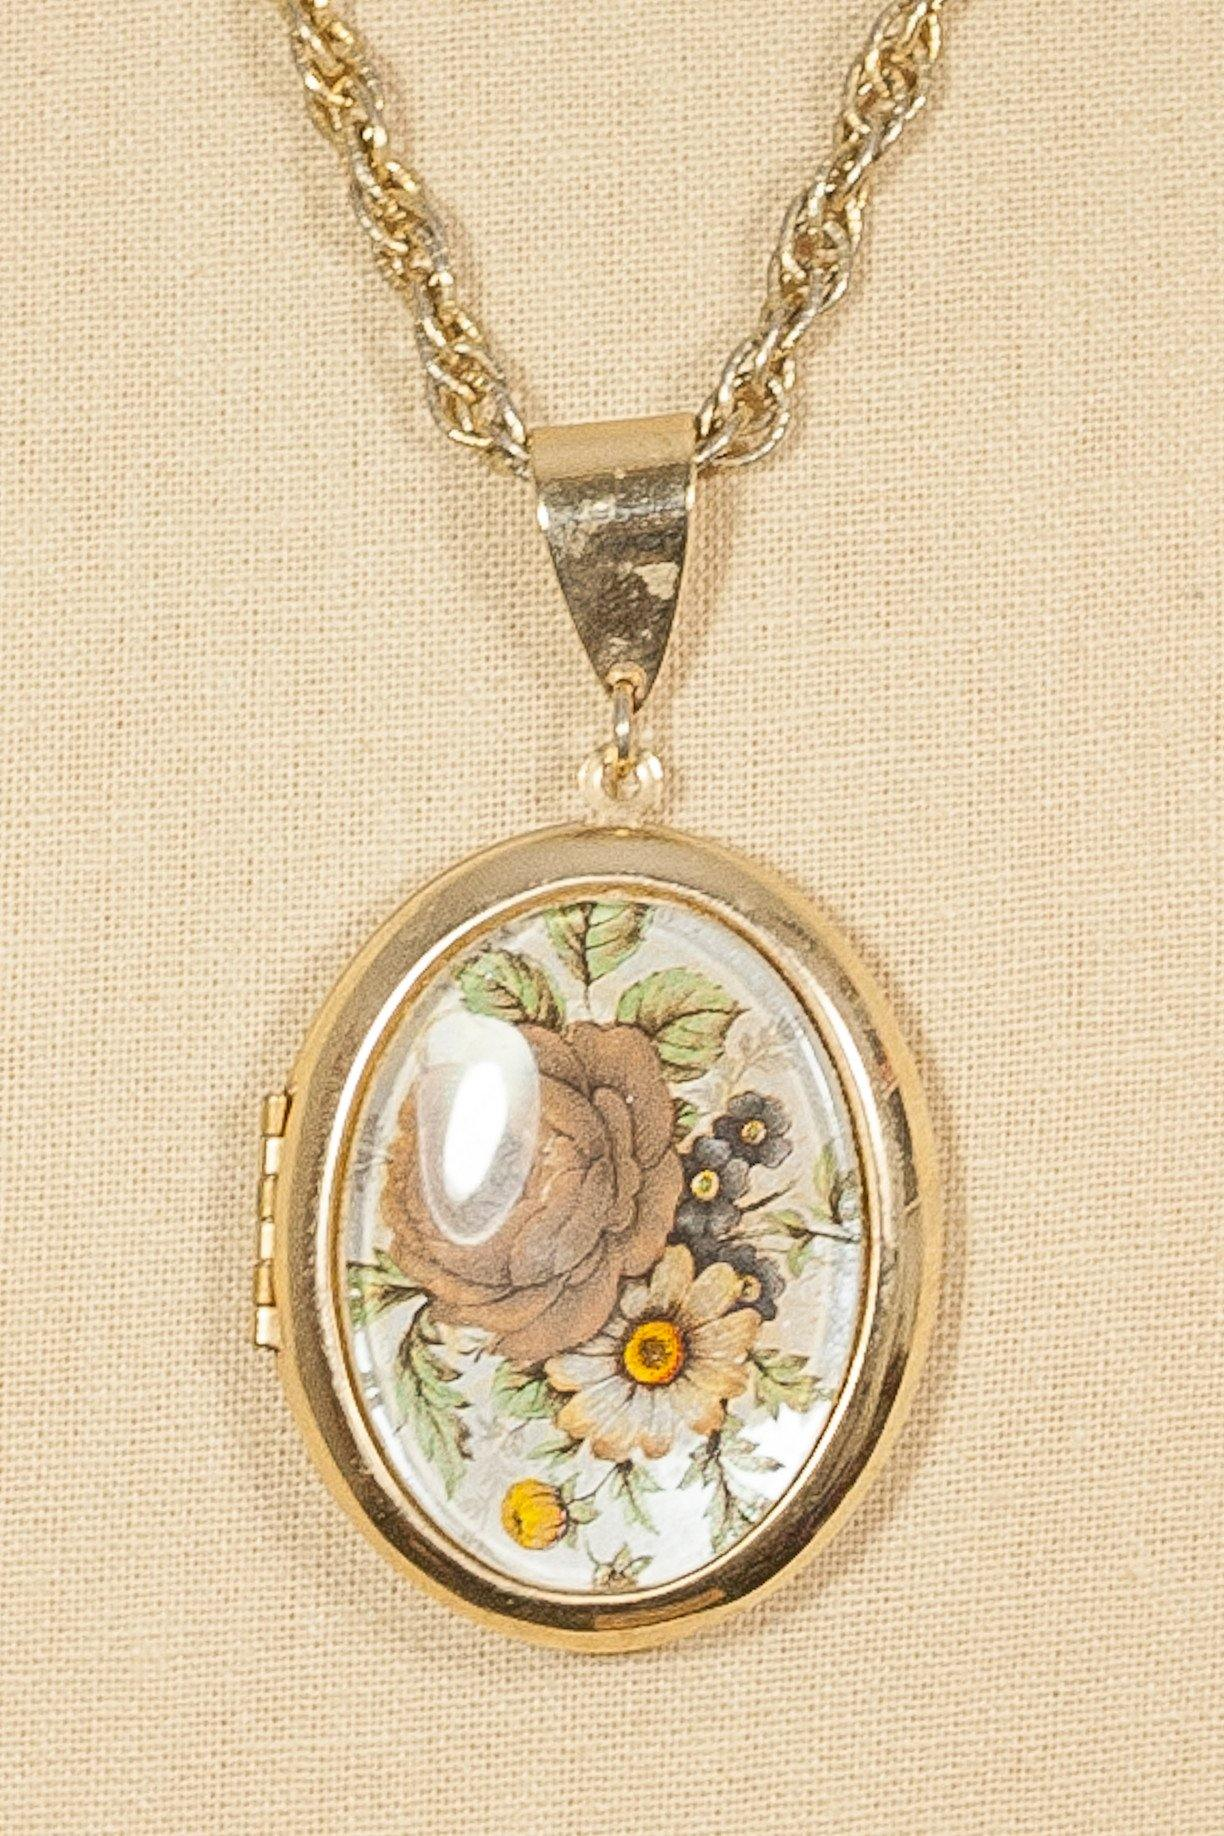 50's__Vintage__Rose Locket Necklace